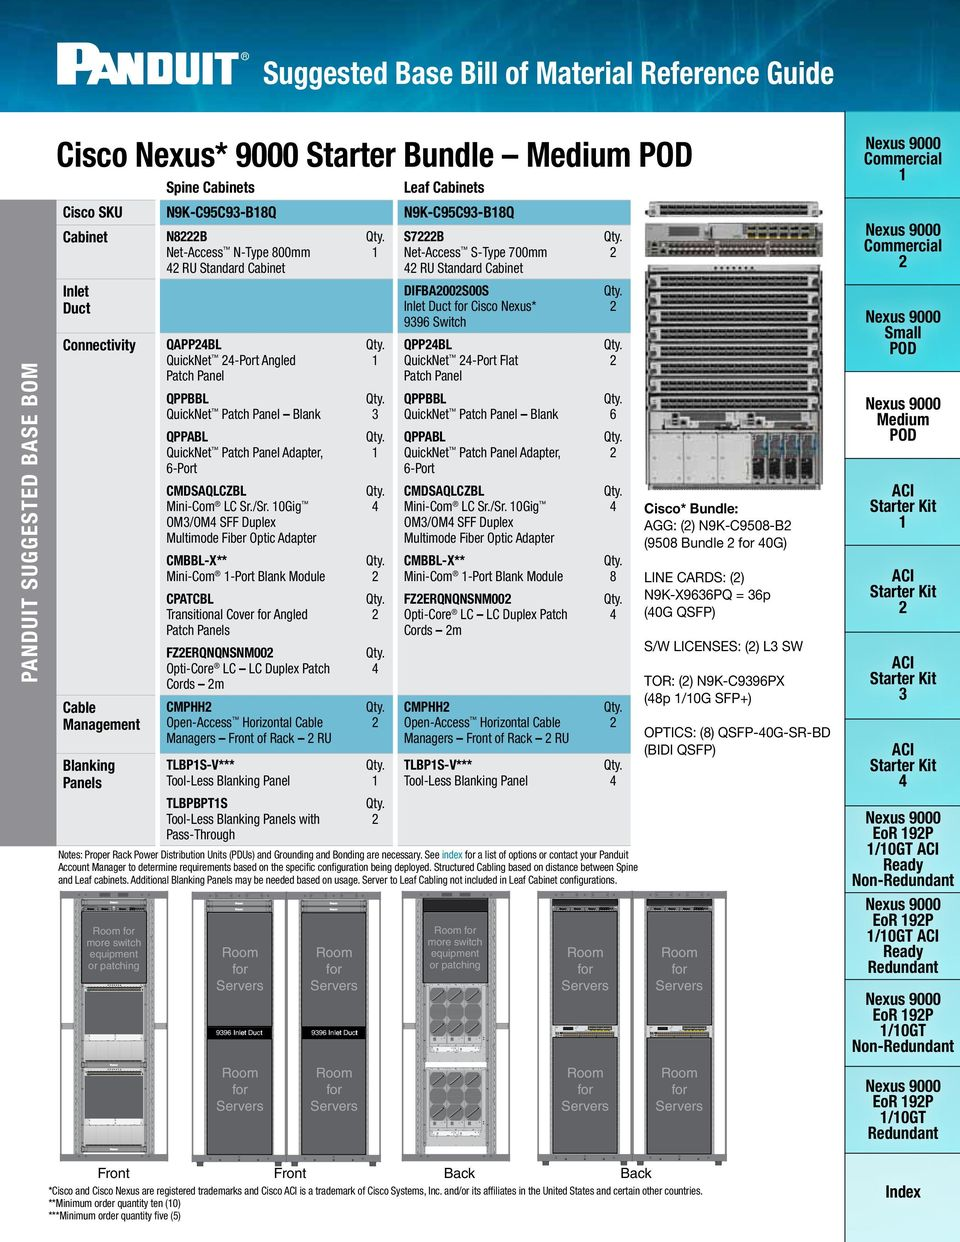 Suggested Base Bill of Material Reference Guide  Cisco Nexus